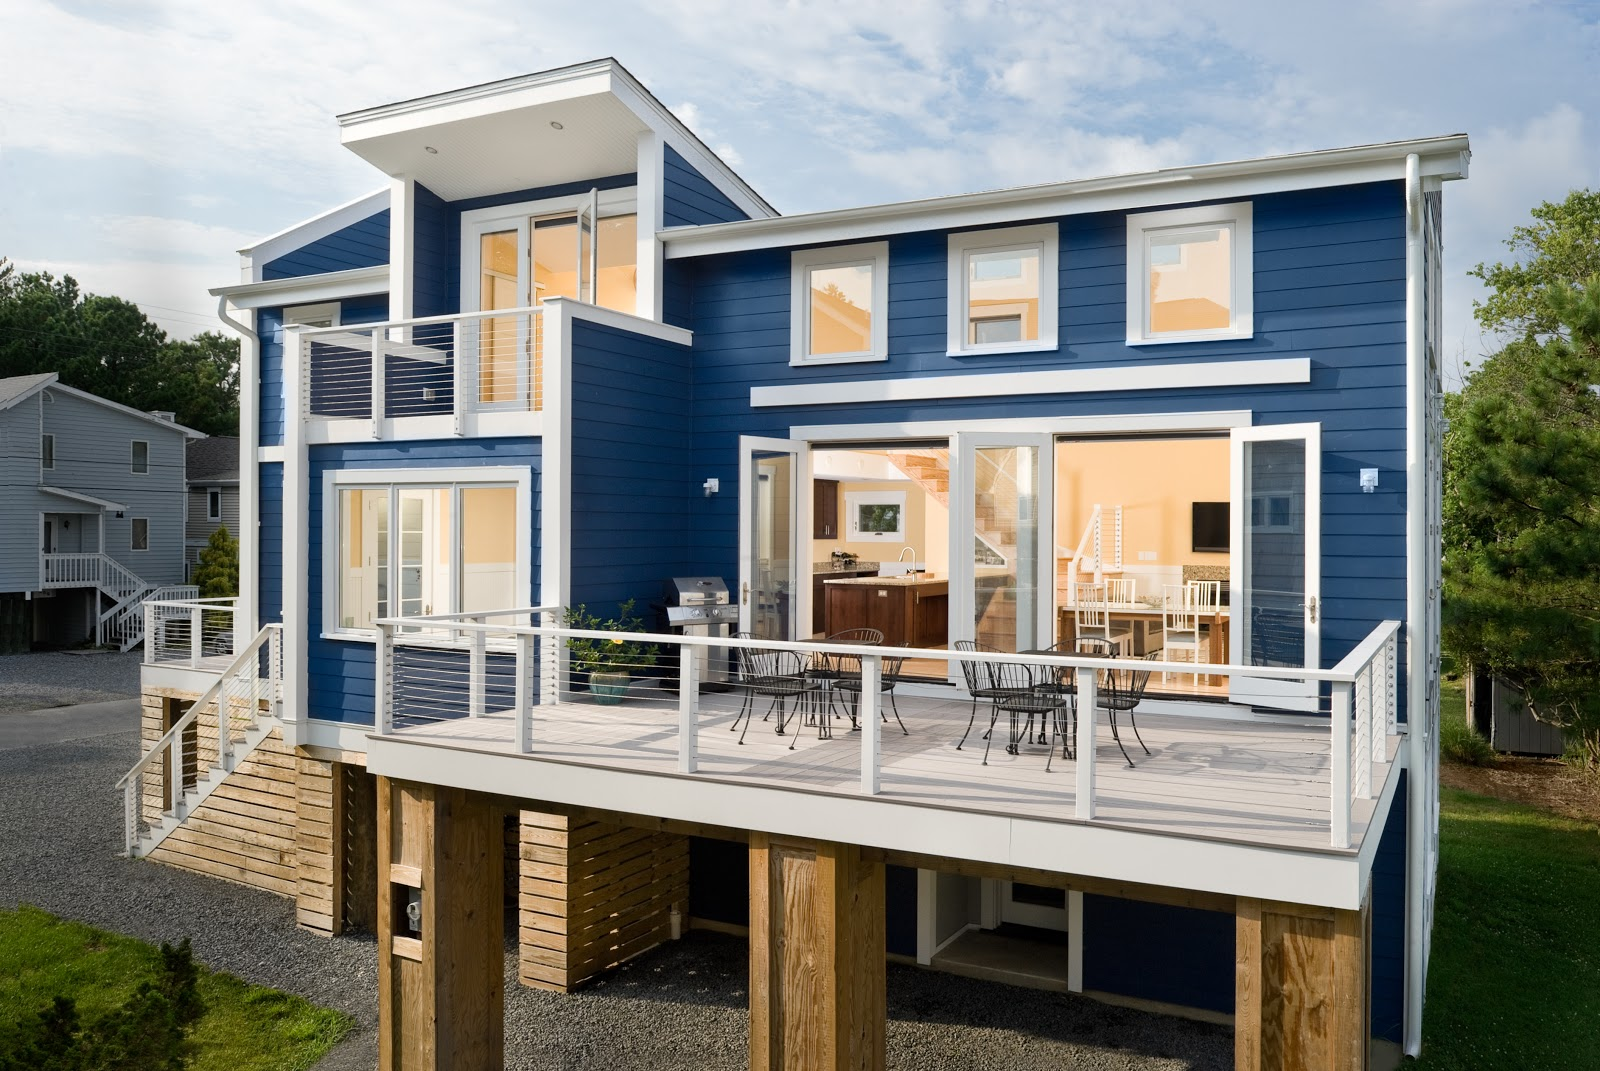 The new beach house two pretty cool houses for Amazing house plans with pictures